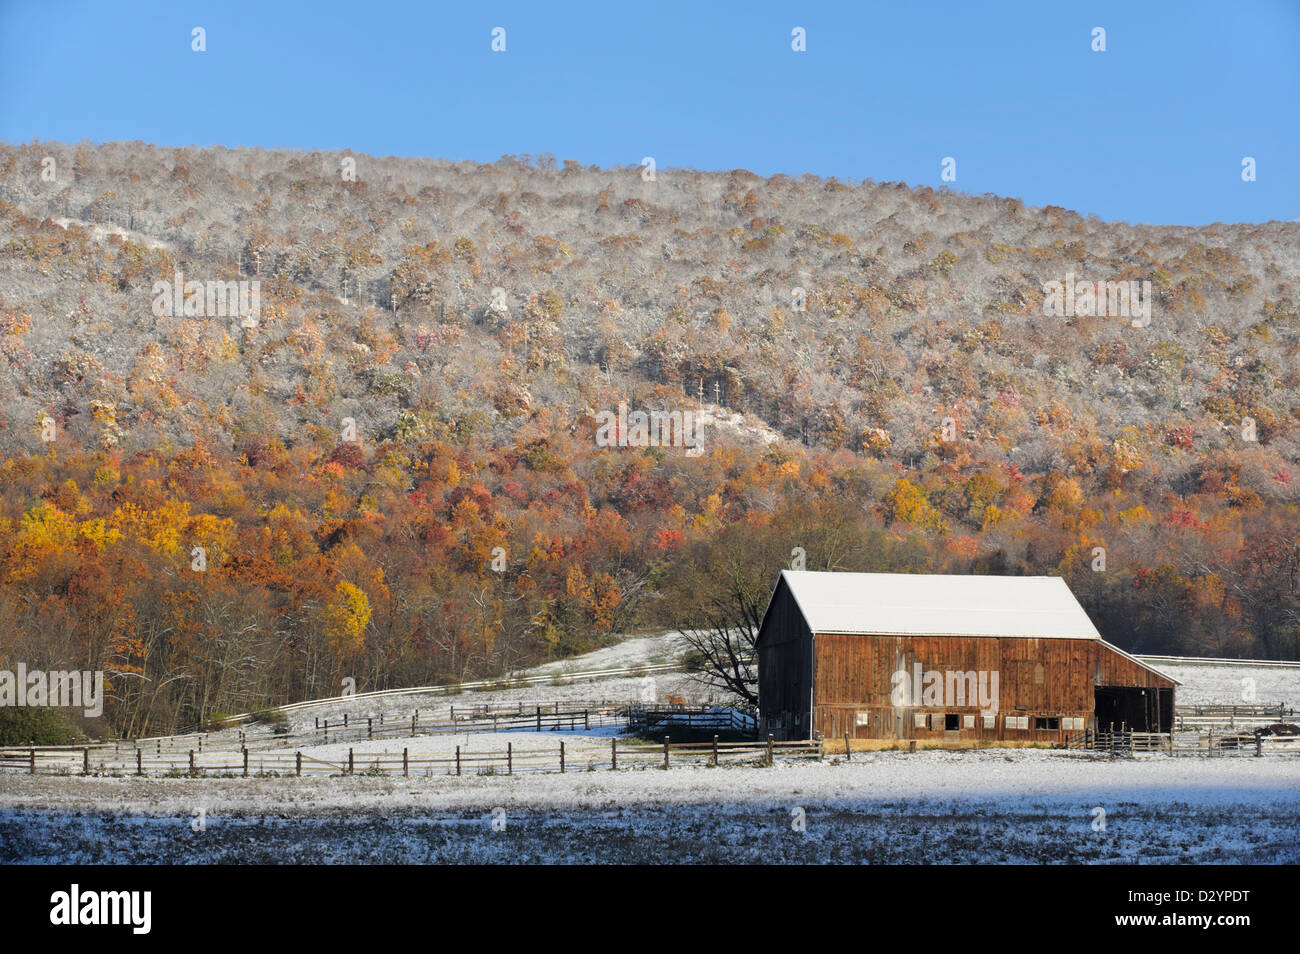 Barn and mountain in early fall snow and sunlight, a scenic cold morning in Pennsylvania, PA, USA. - Stock Image